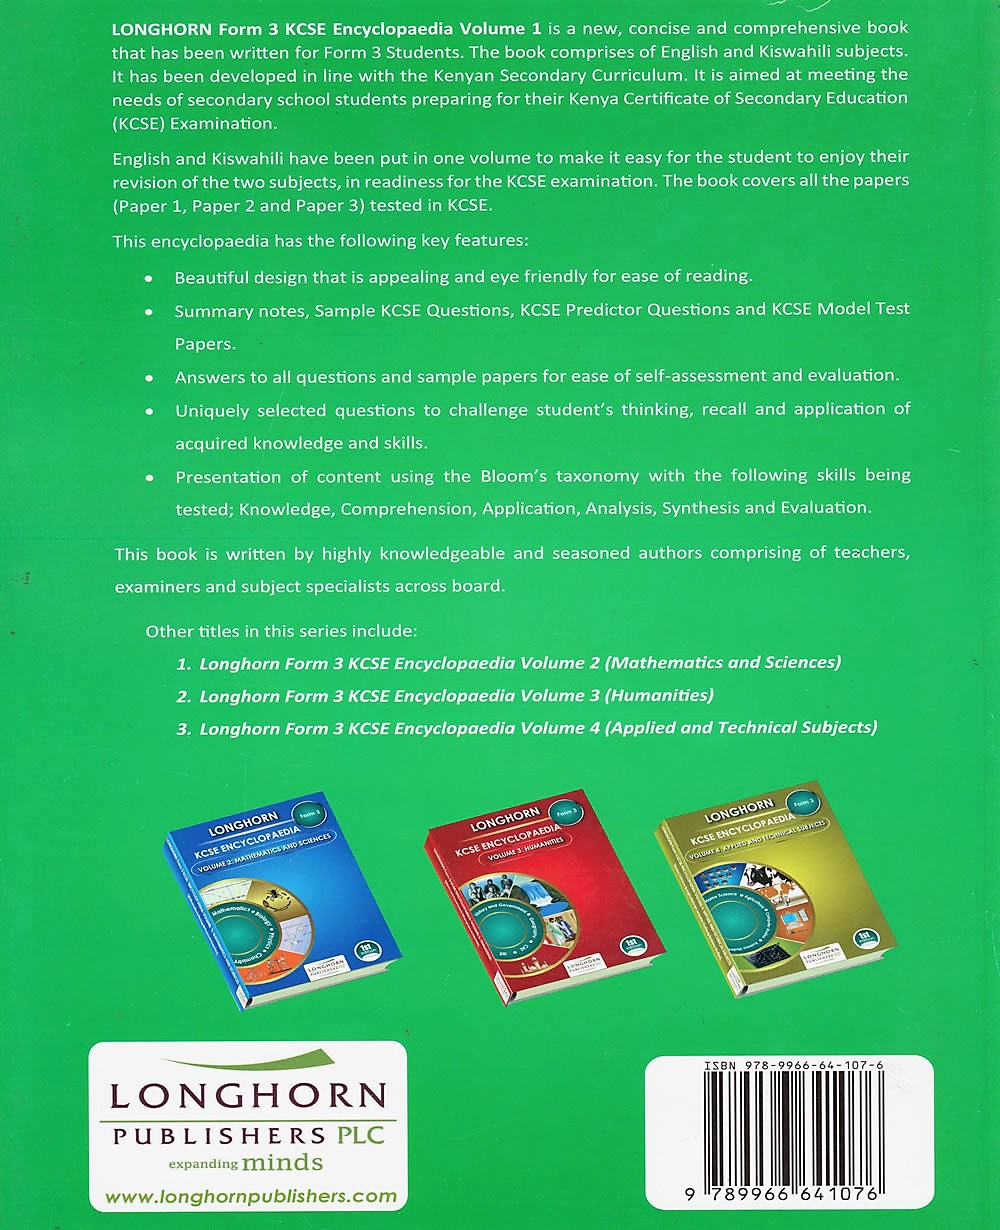 Longhorn KCSE Encyclopaedia F3 Vol 1 Languages | Books, Stationery,  Computers, Laptops and more  Buy online and get free delivery on orders  above Ksh